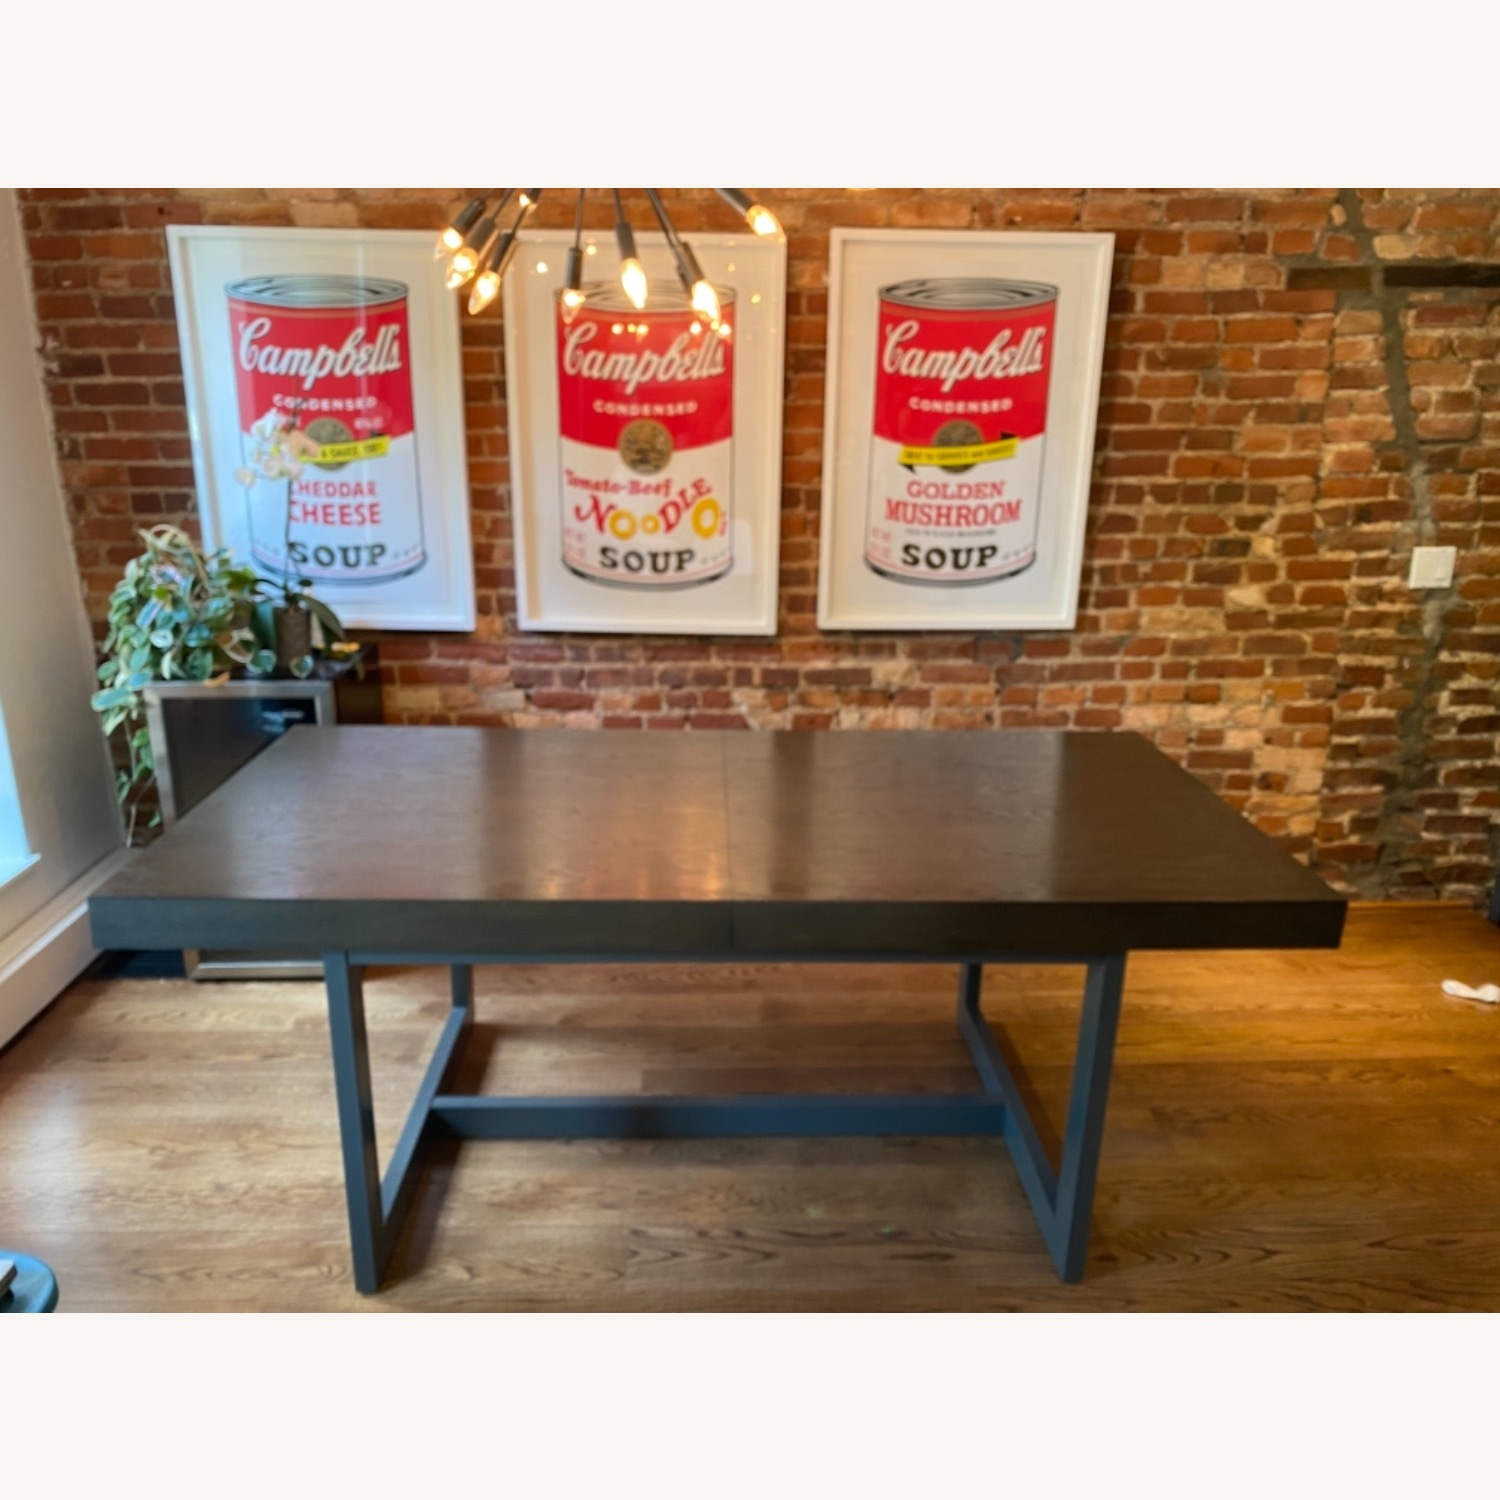 Crate & Barrel Extending Dining Table - image-0